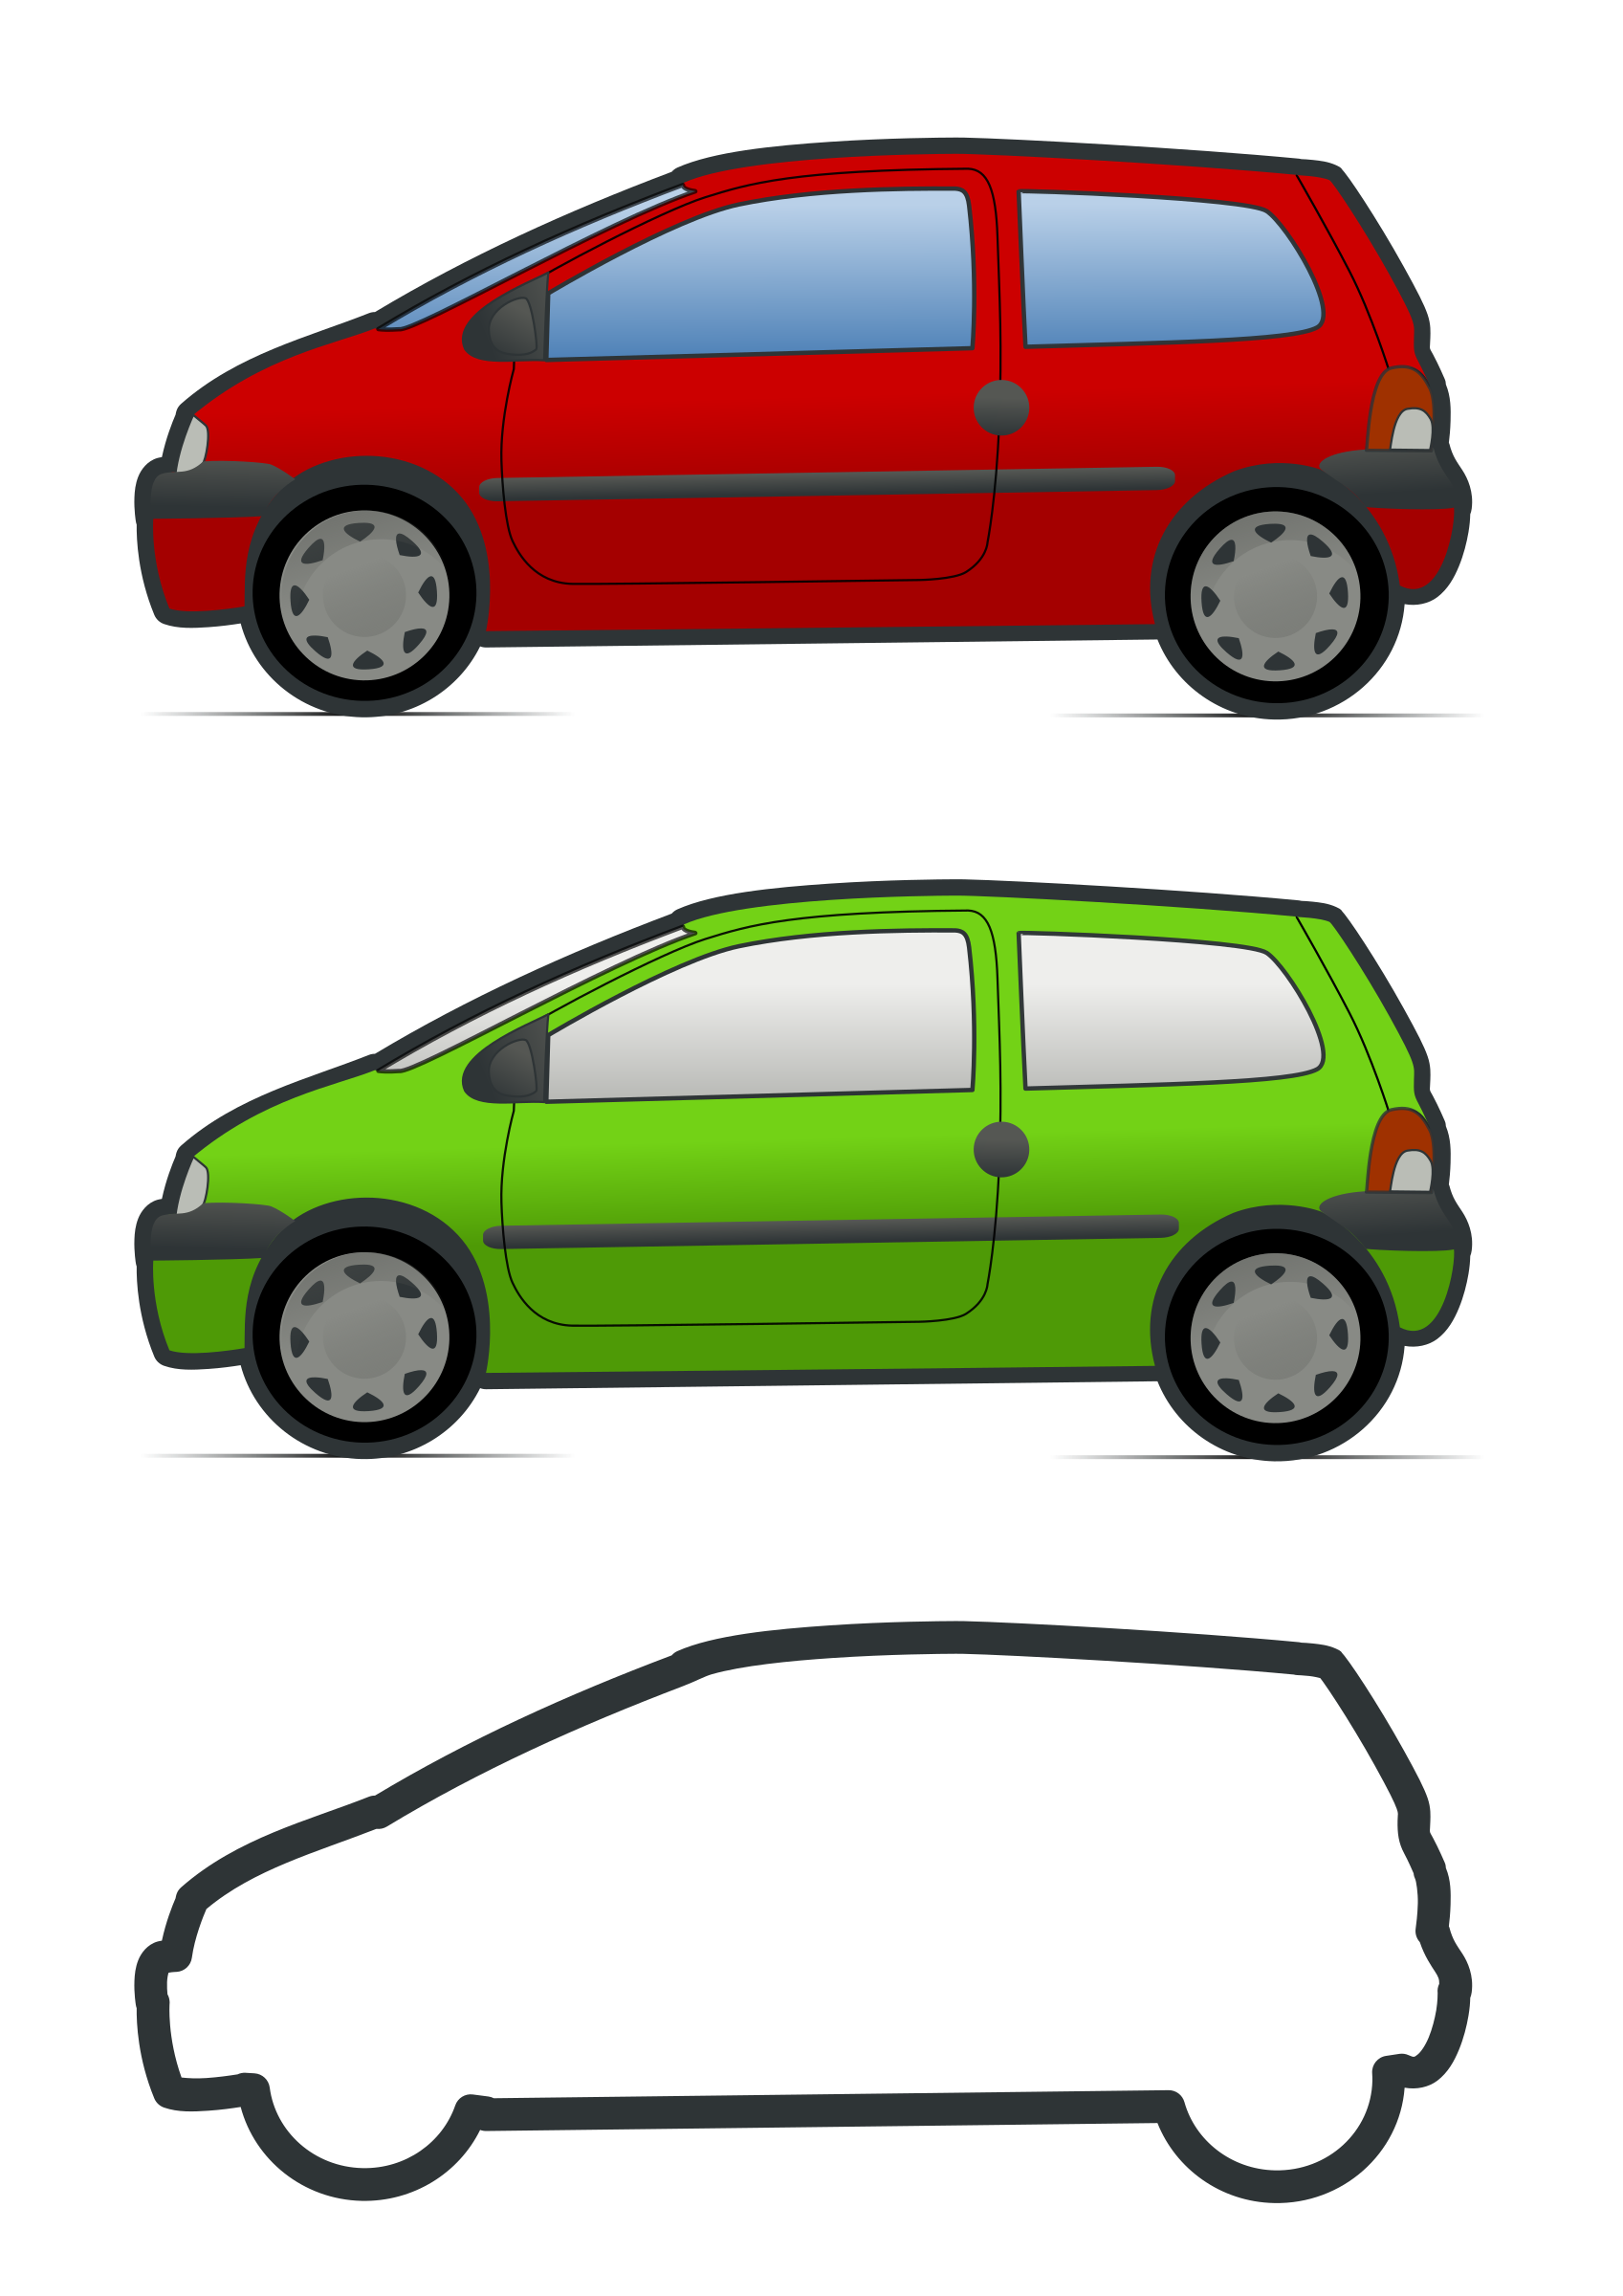 French car clipart clip royalty free stock Generic car PNG Clipart - Download free Car images in PNG clip royalty free stock